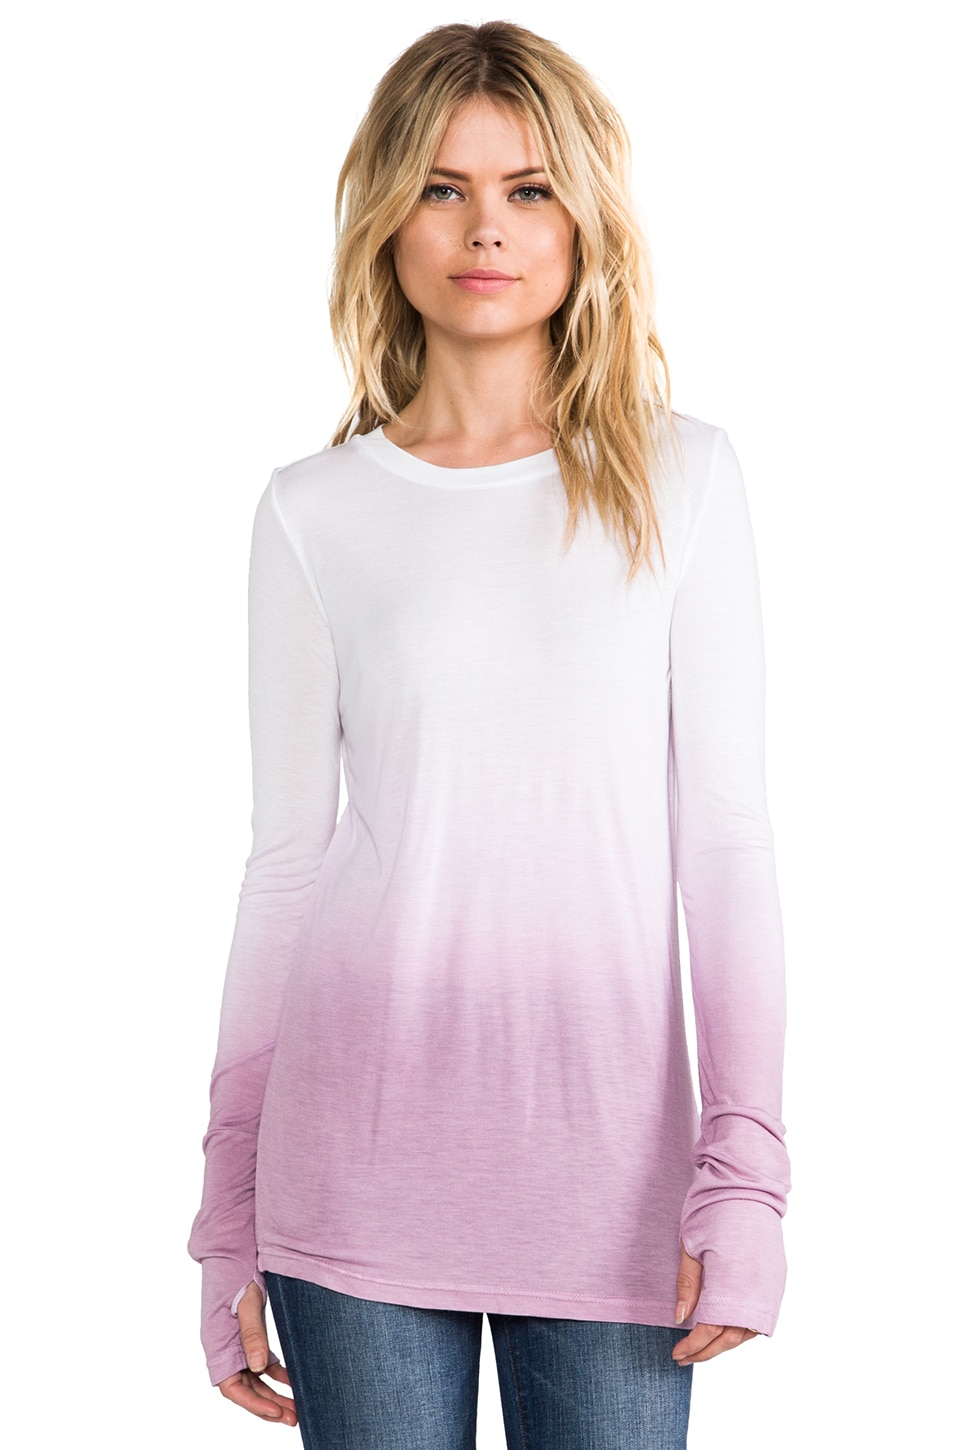 Pencey Standard Cuffed Long Sleeve in Purple